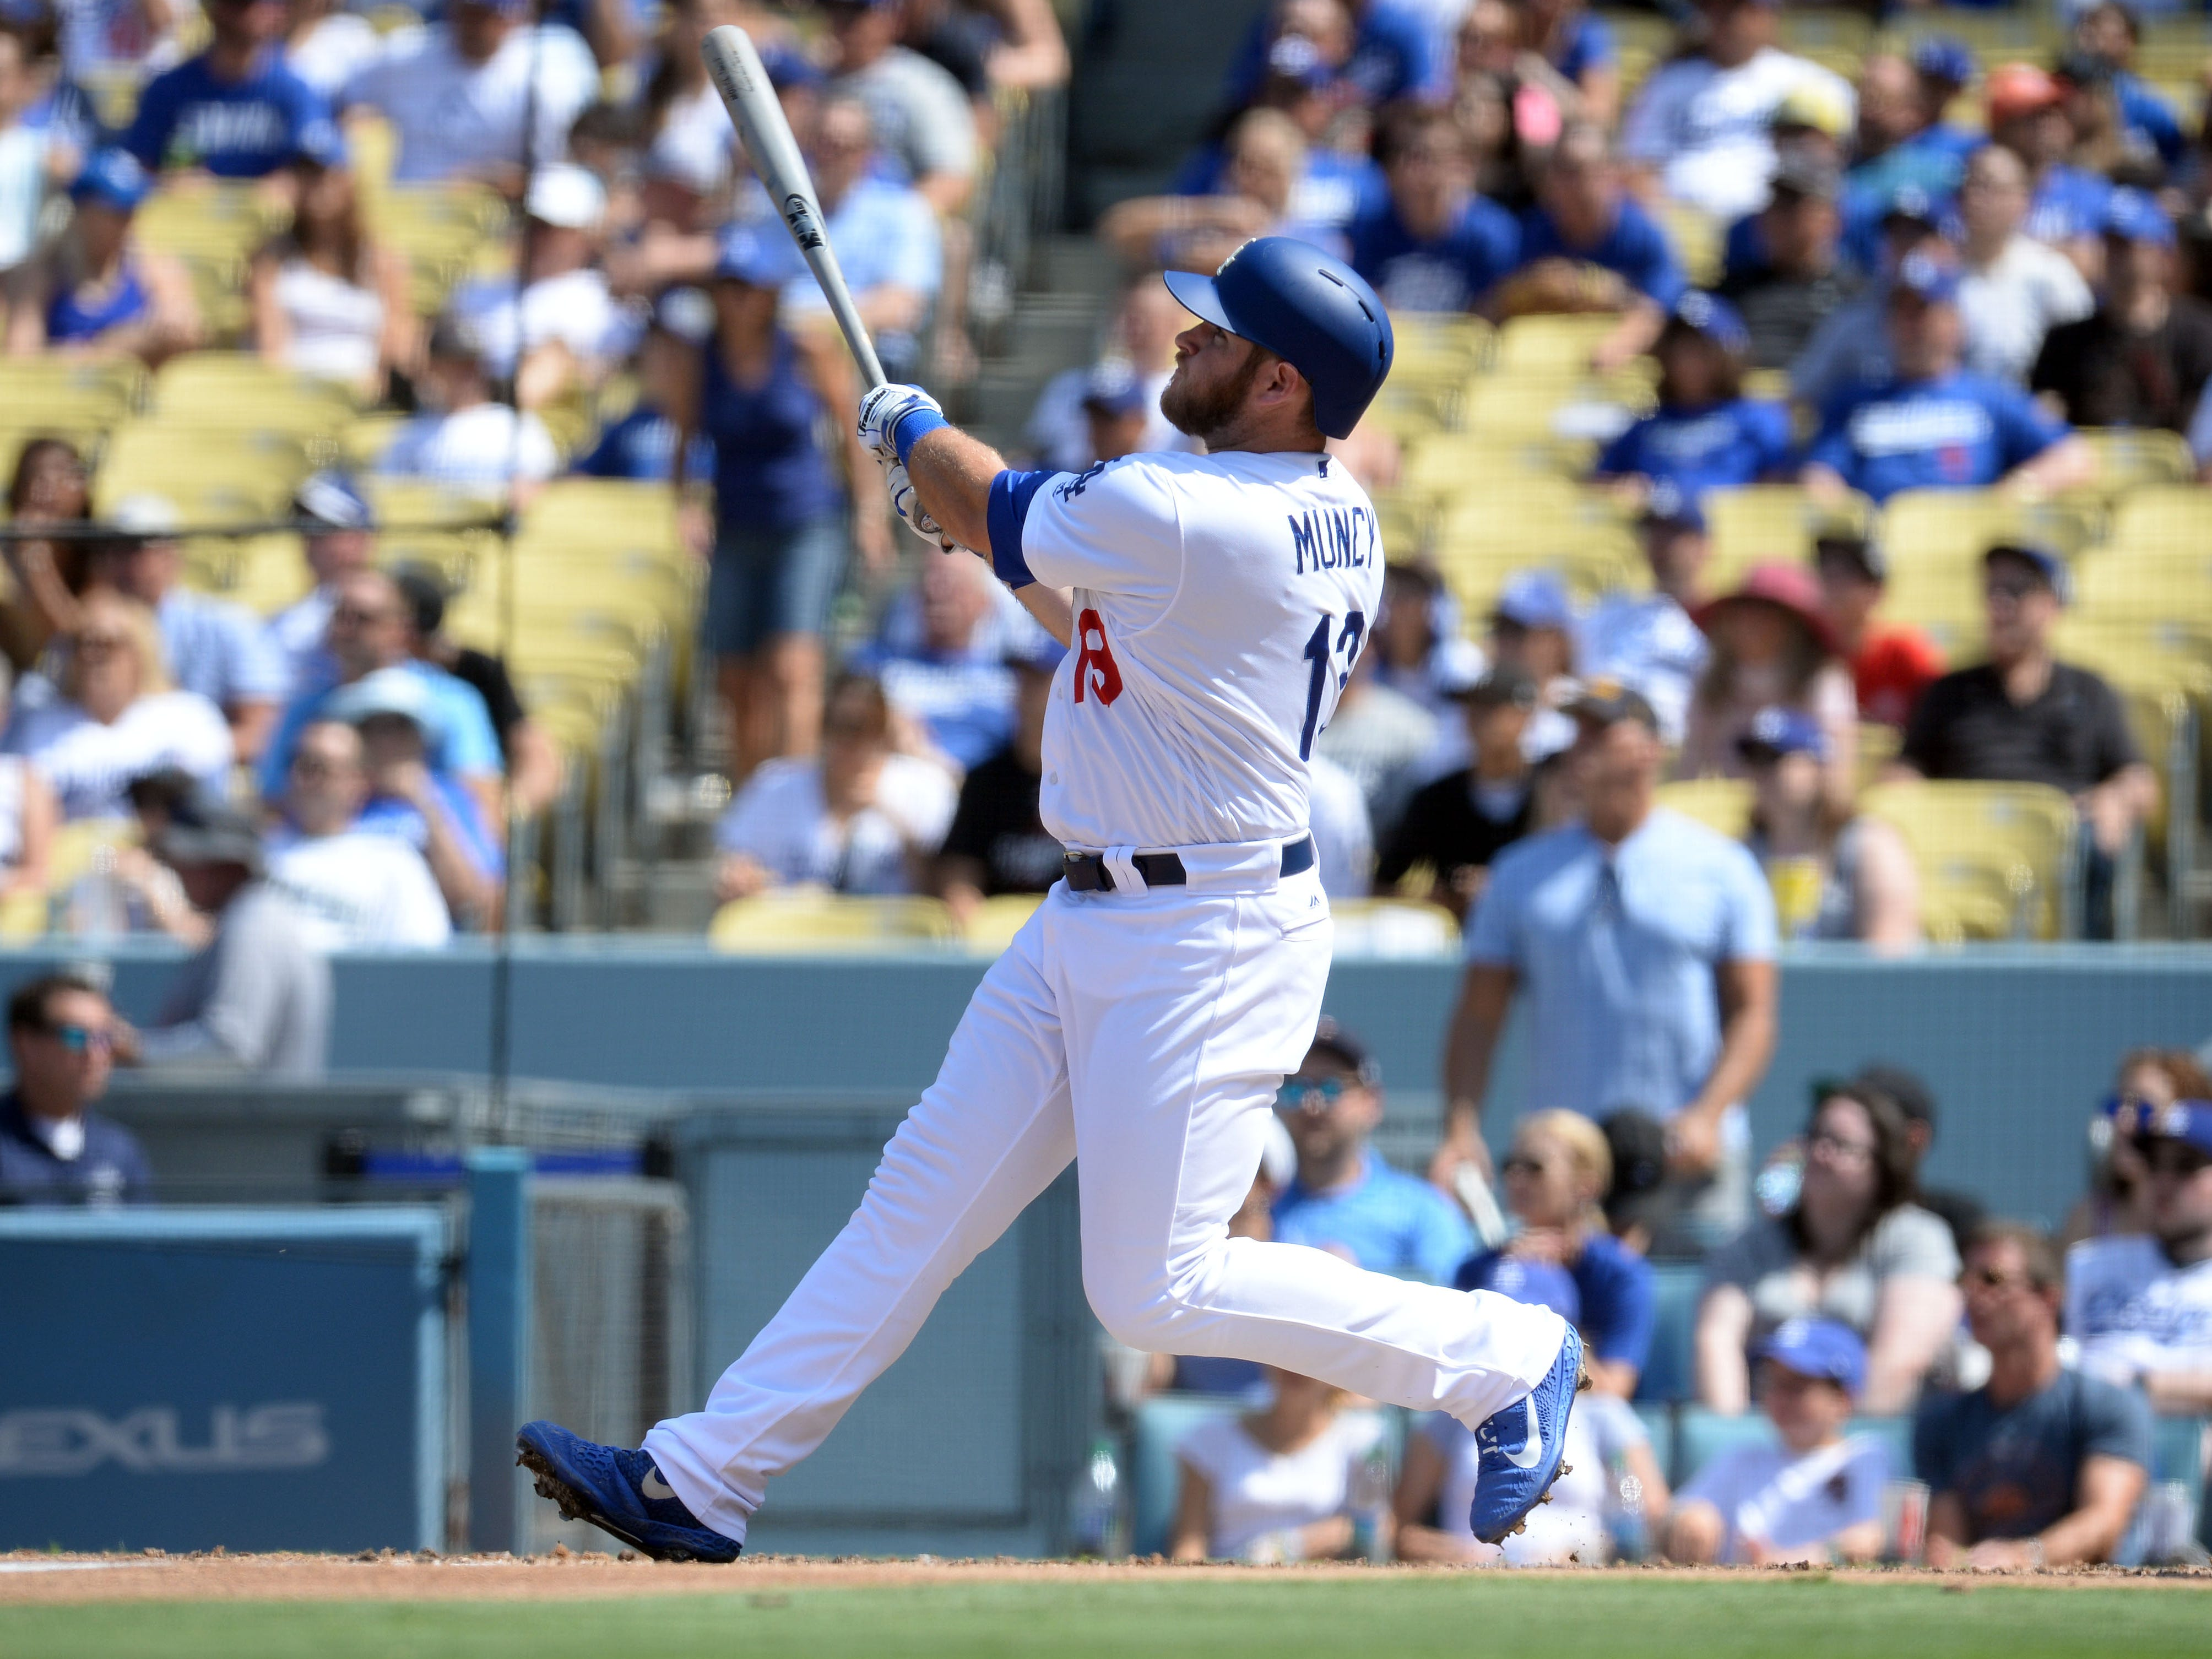 September 2, 2018; Los Angeles, CA, USA; Los Angeles Dodgers first baseman Max Muncy (13) hits a solo home run against the Arizona Diamondbacks in the fifth inning at Dodger Stadium. Mandatory Credit: Gary A. Vasquez-USA TODAY Sports